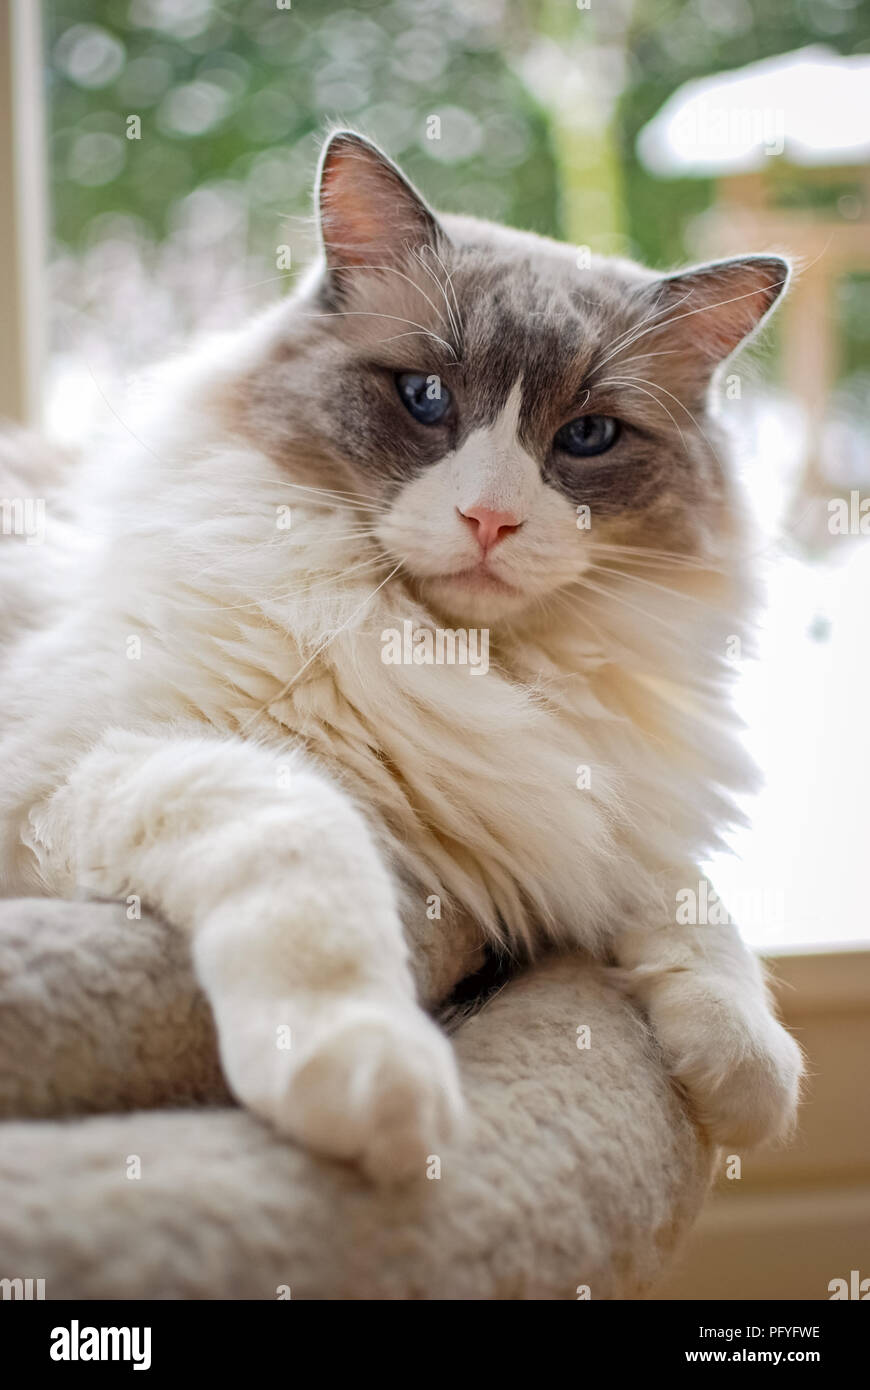 Nice Ragdoll cat. It is best known for its docile and placid temperament . The name Ragdoll is derived from the tendency to go limp when picked up. - Stock Image